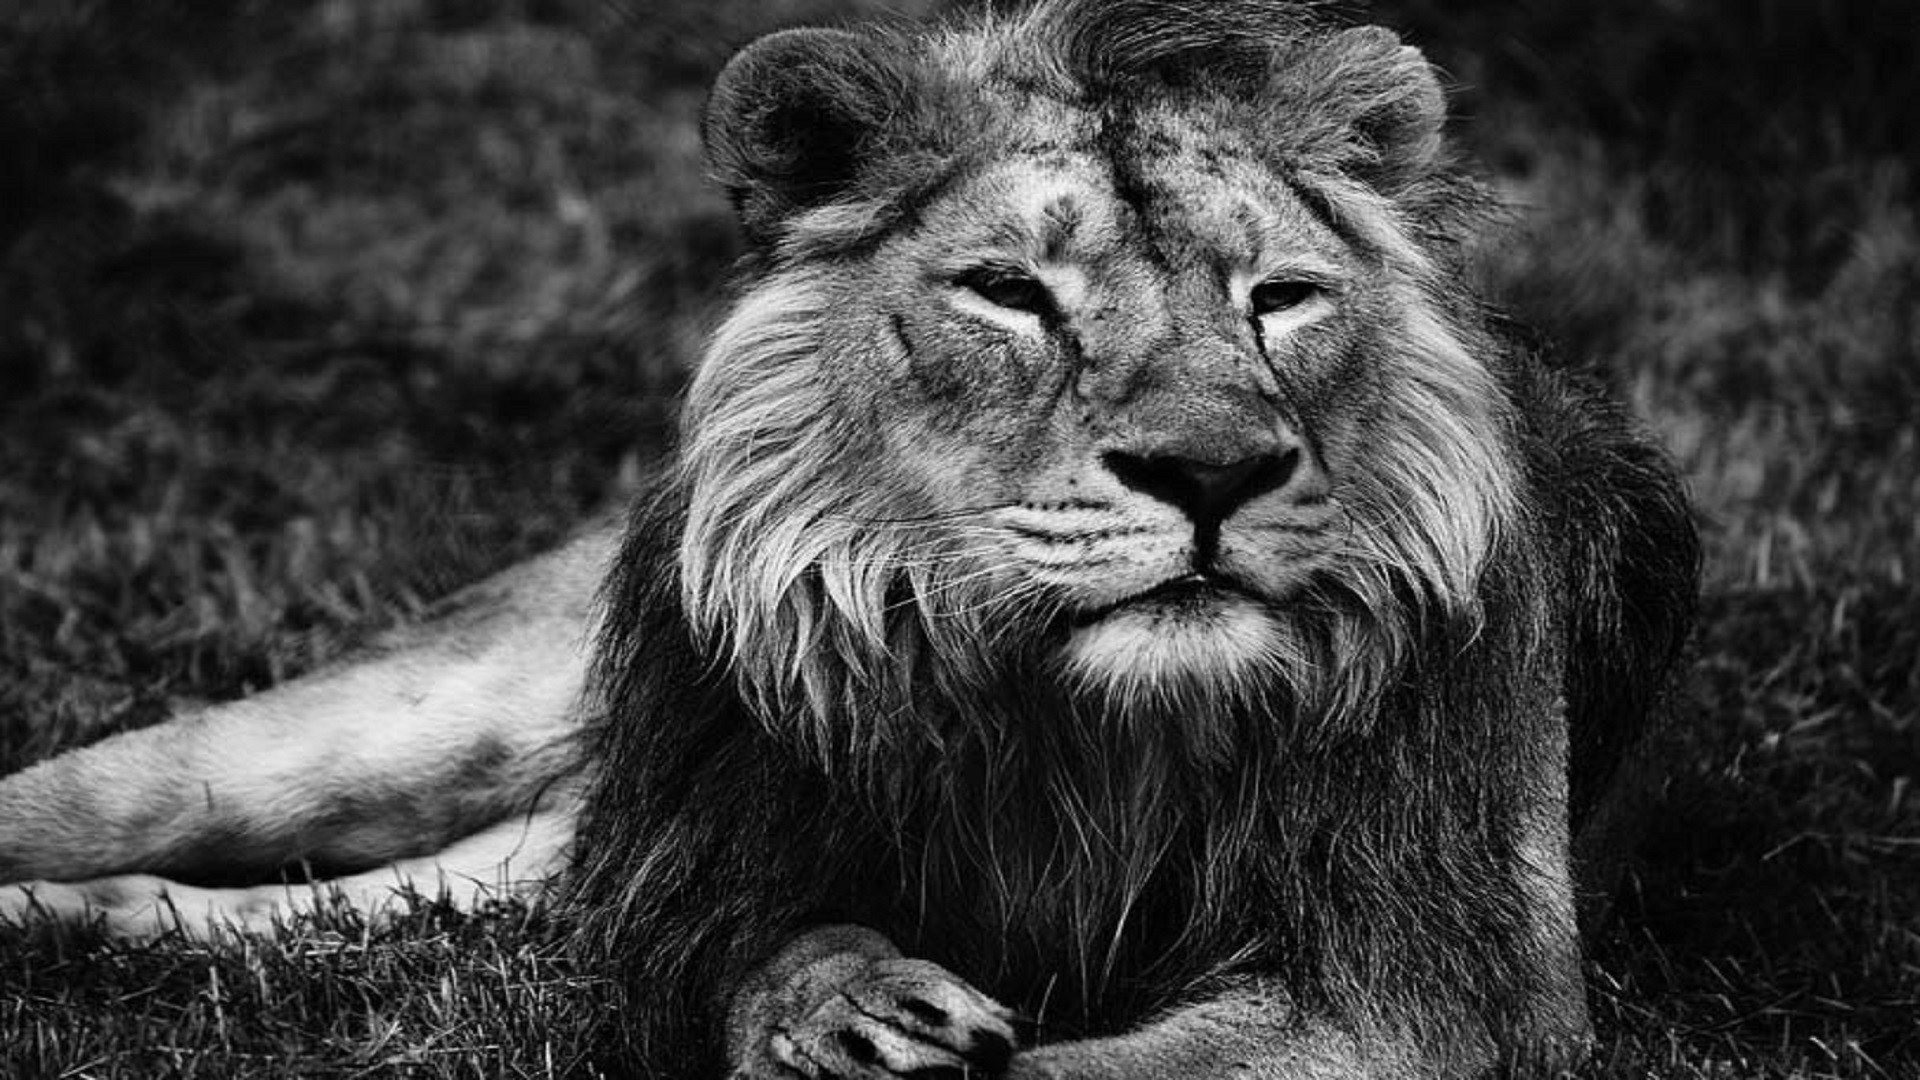 … lion-black-and-white-hd-free-wallpapers …